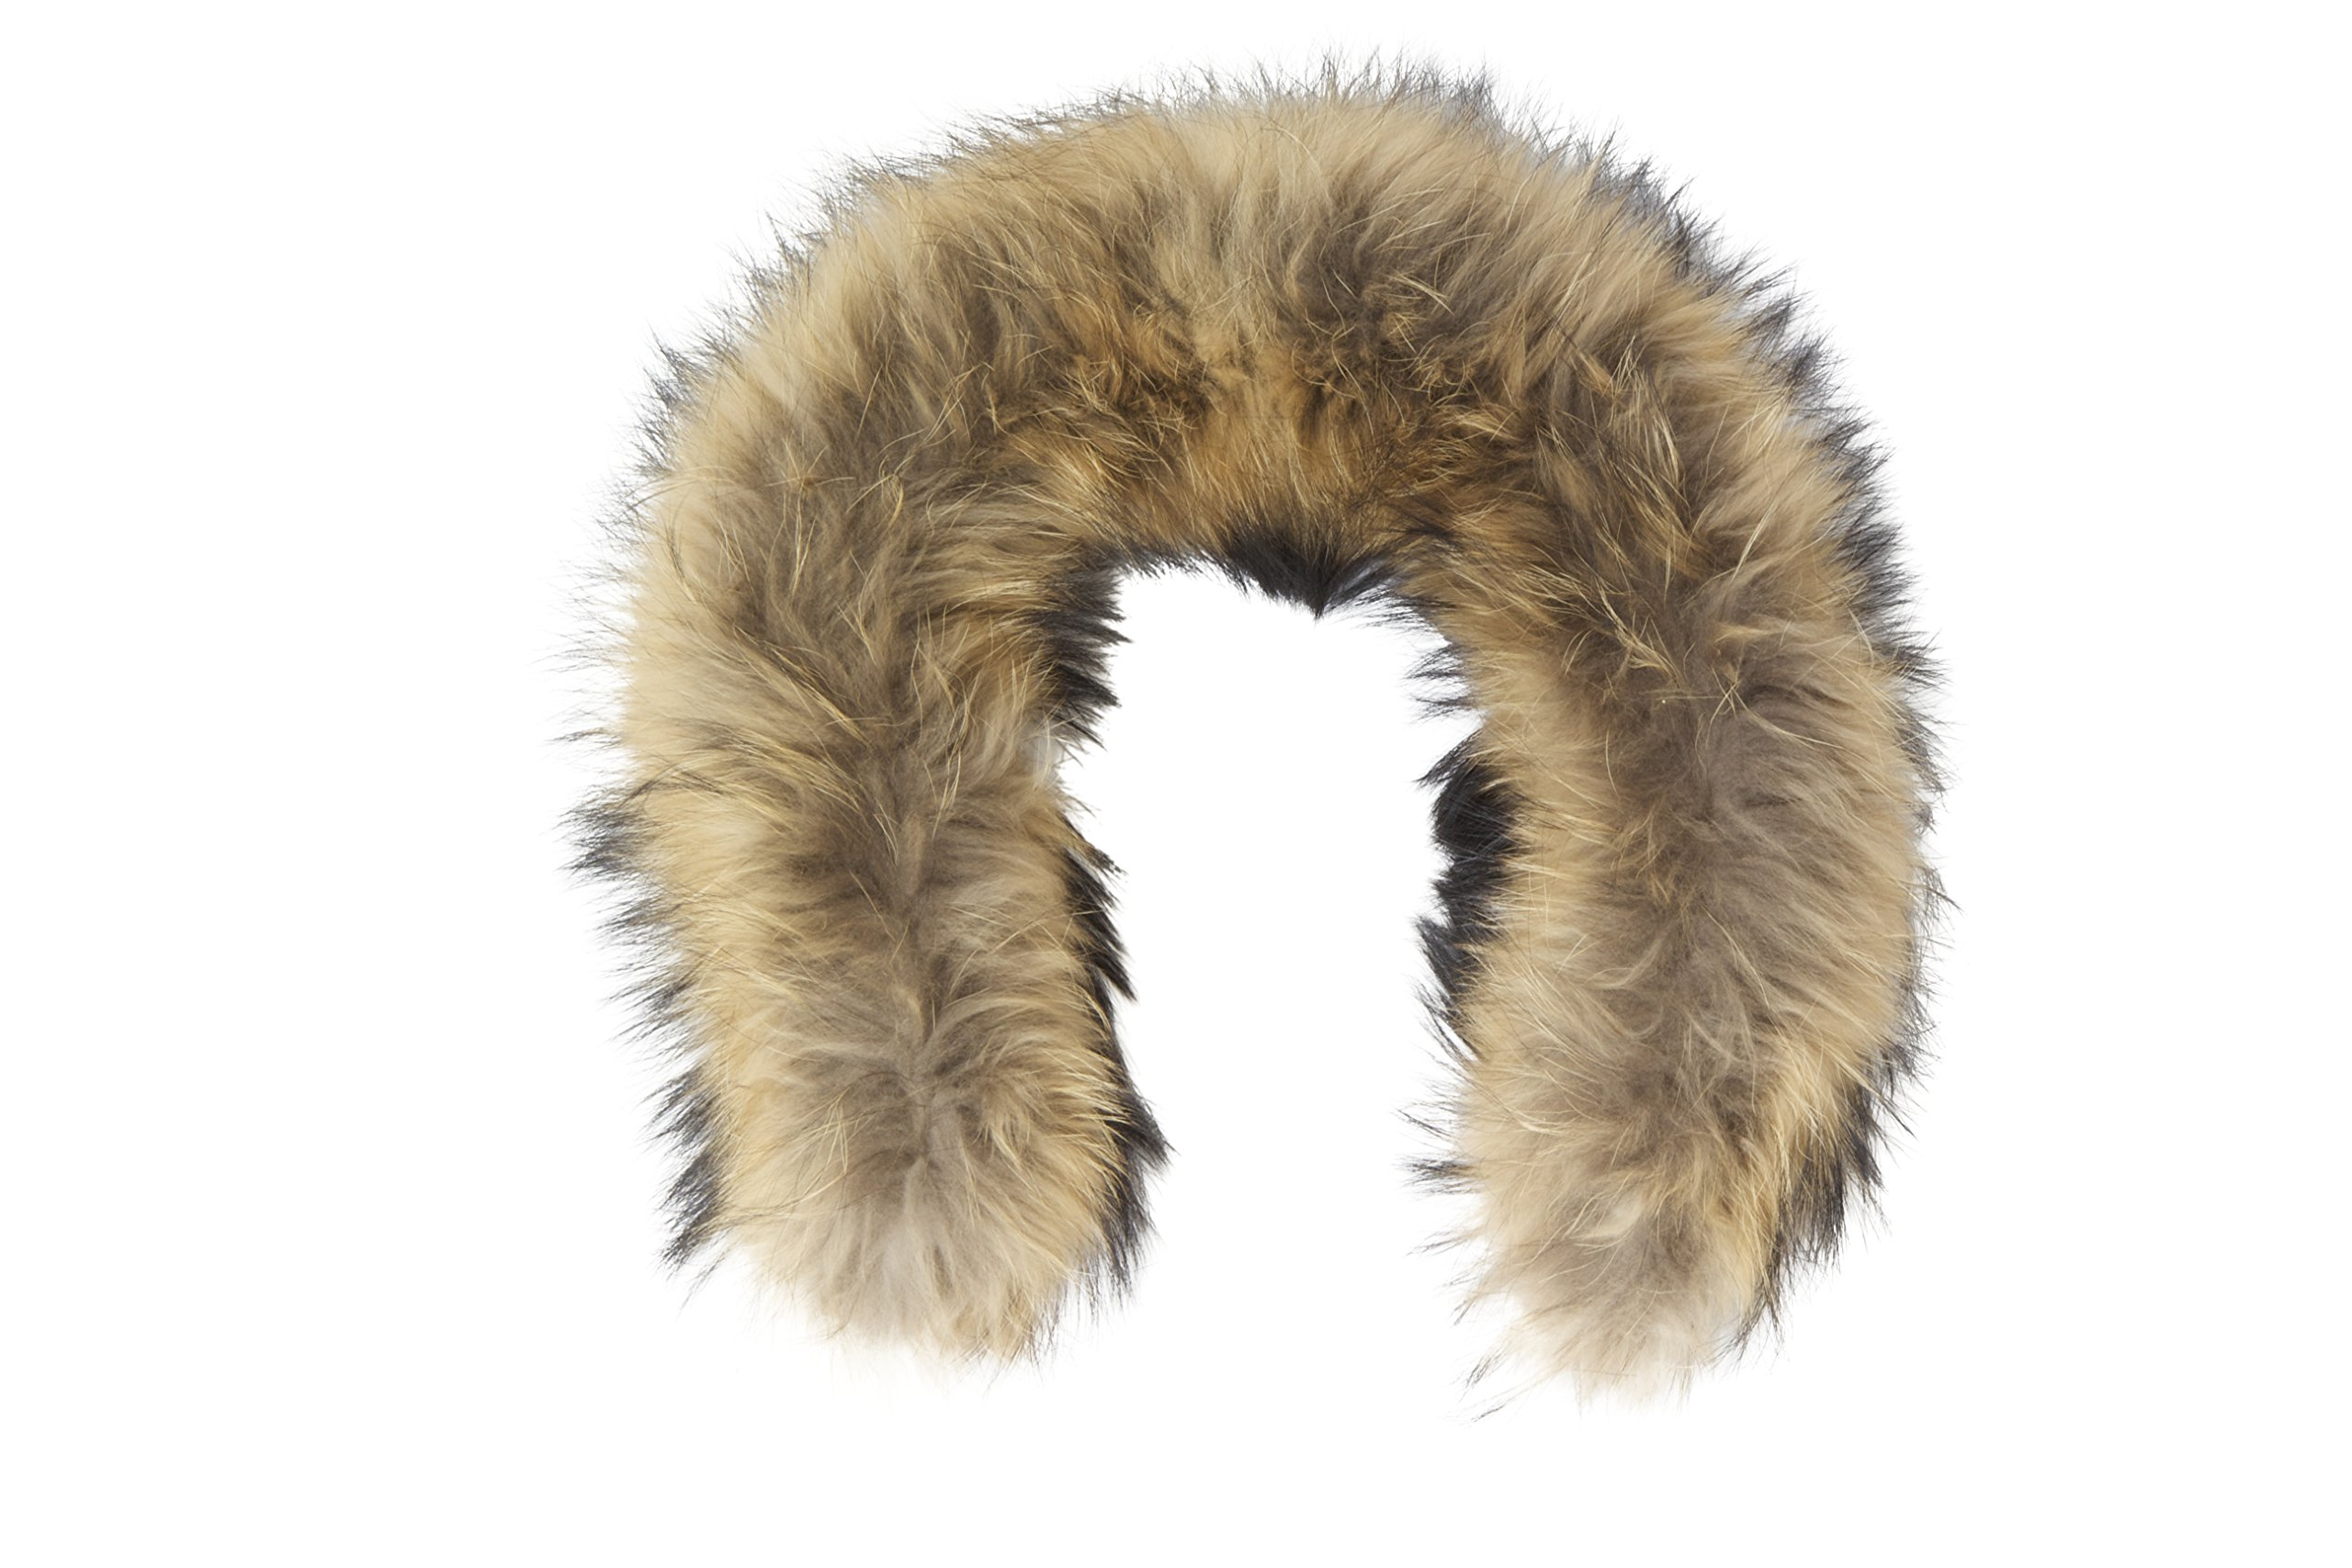 MILLY REICH Raccoon fur hood trim for coat with loops and buttons (natural color) (4. CRAZY THICK AND WIDE)